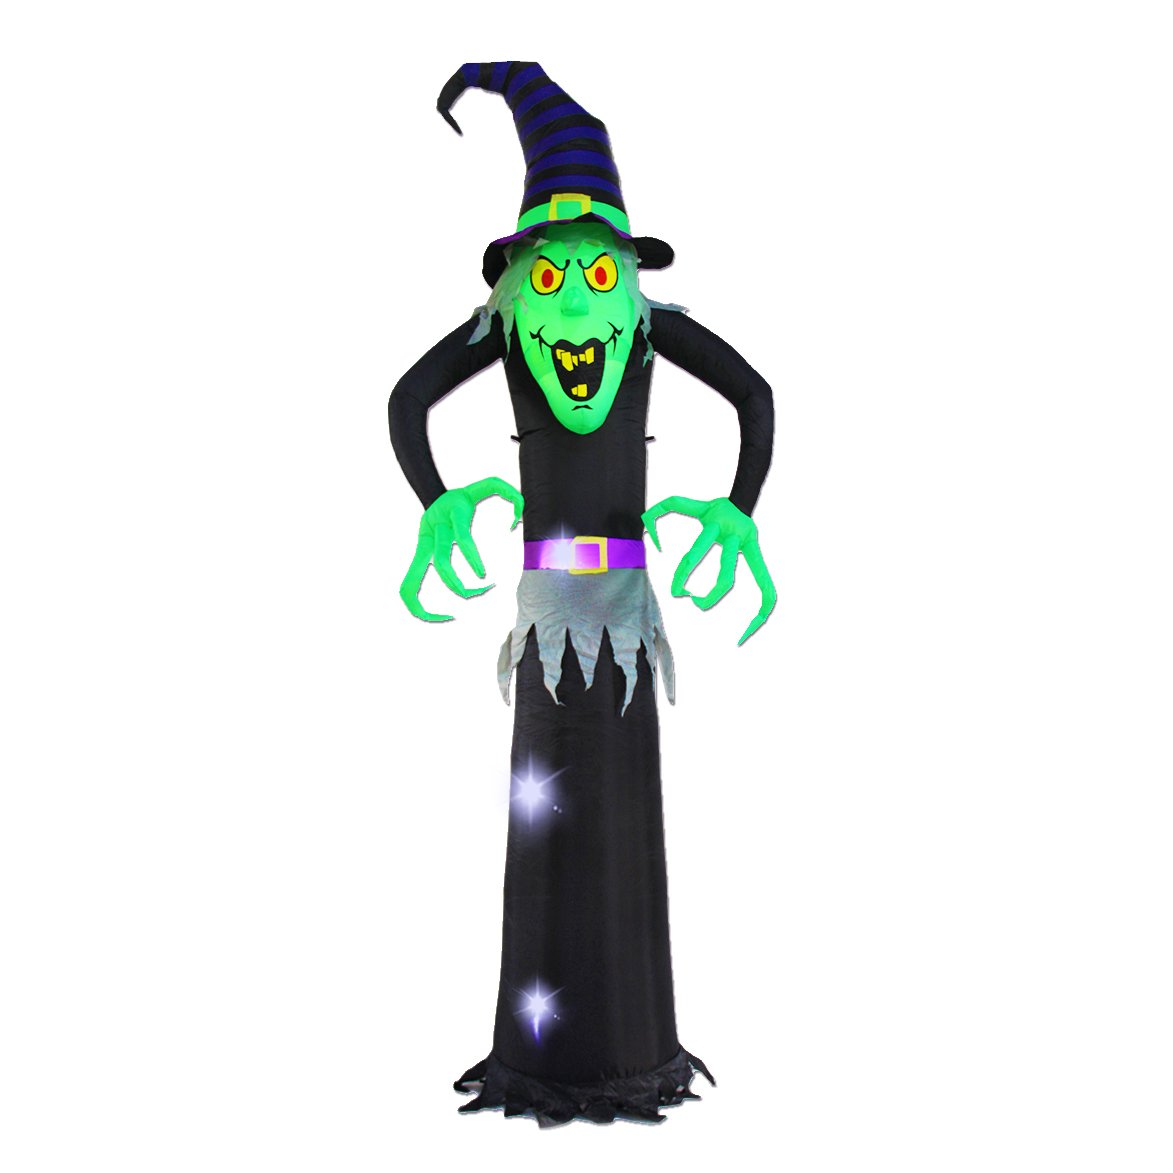 SEASONBLOW 8 Ft Halloween Inflatable Witch Ghost Decoration Lantern for Home Indoors Outdoors Yard Lawn Party Supermarket